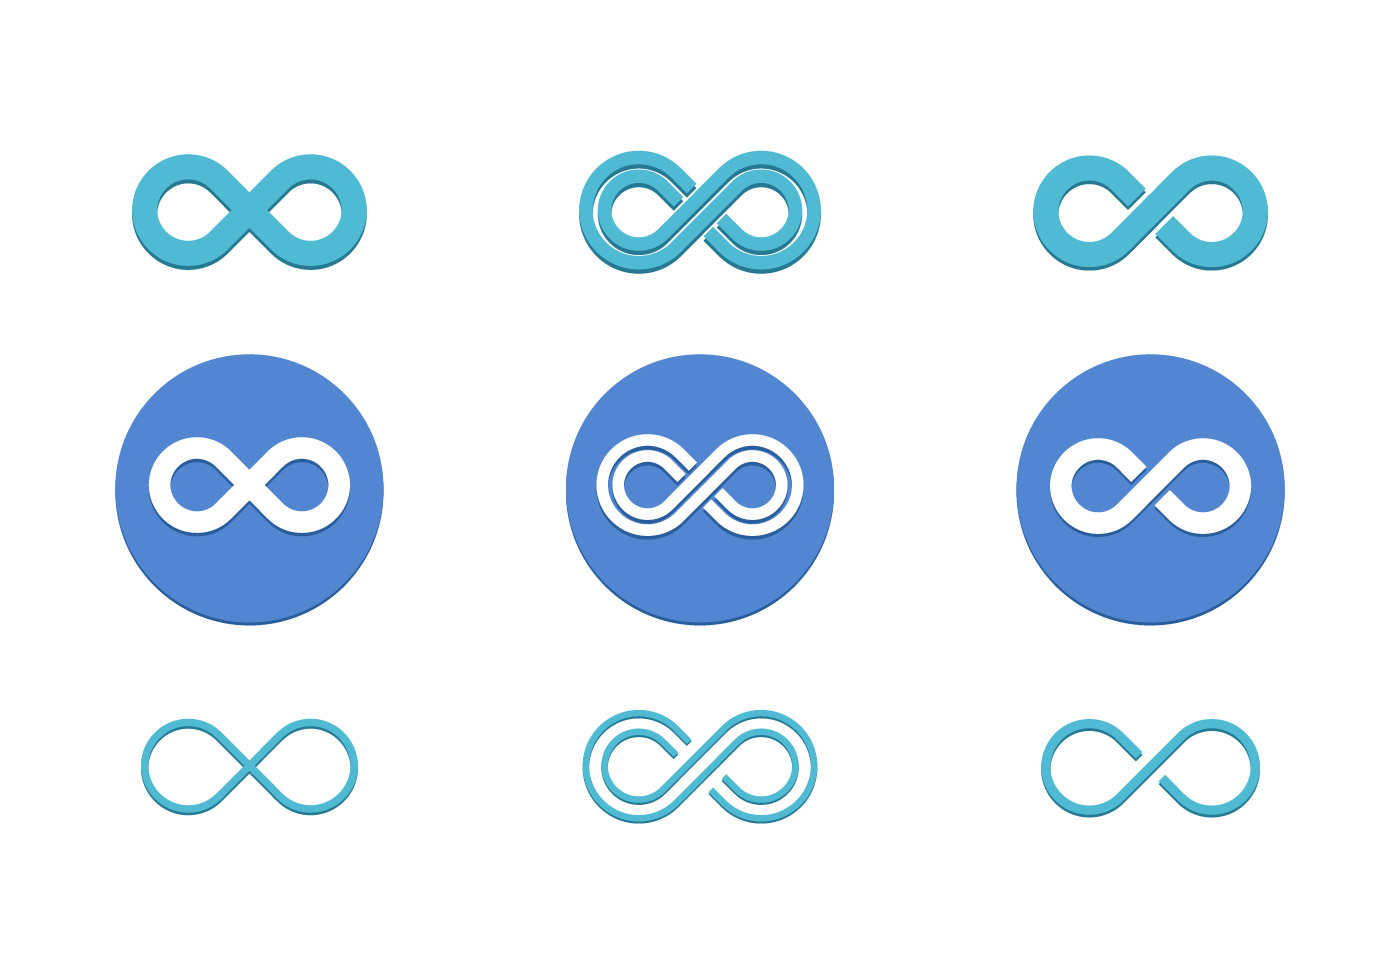 Infinite Loop Vector Pack Flat Icon Download Free Vector Art Stock Graphics Amp Images